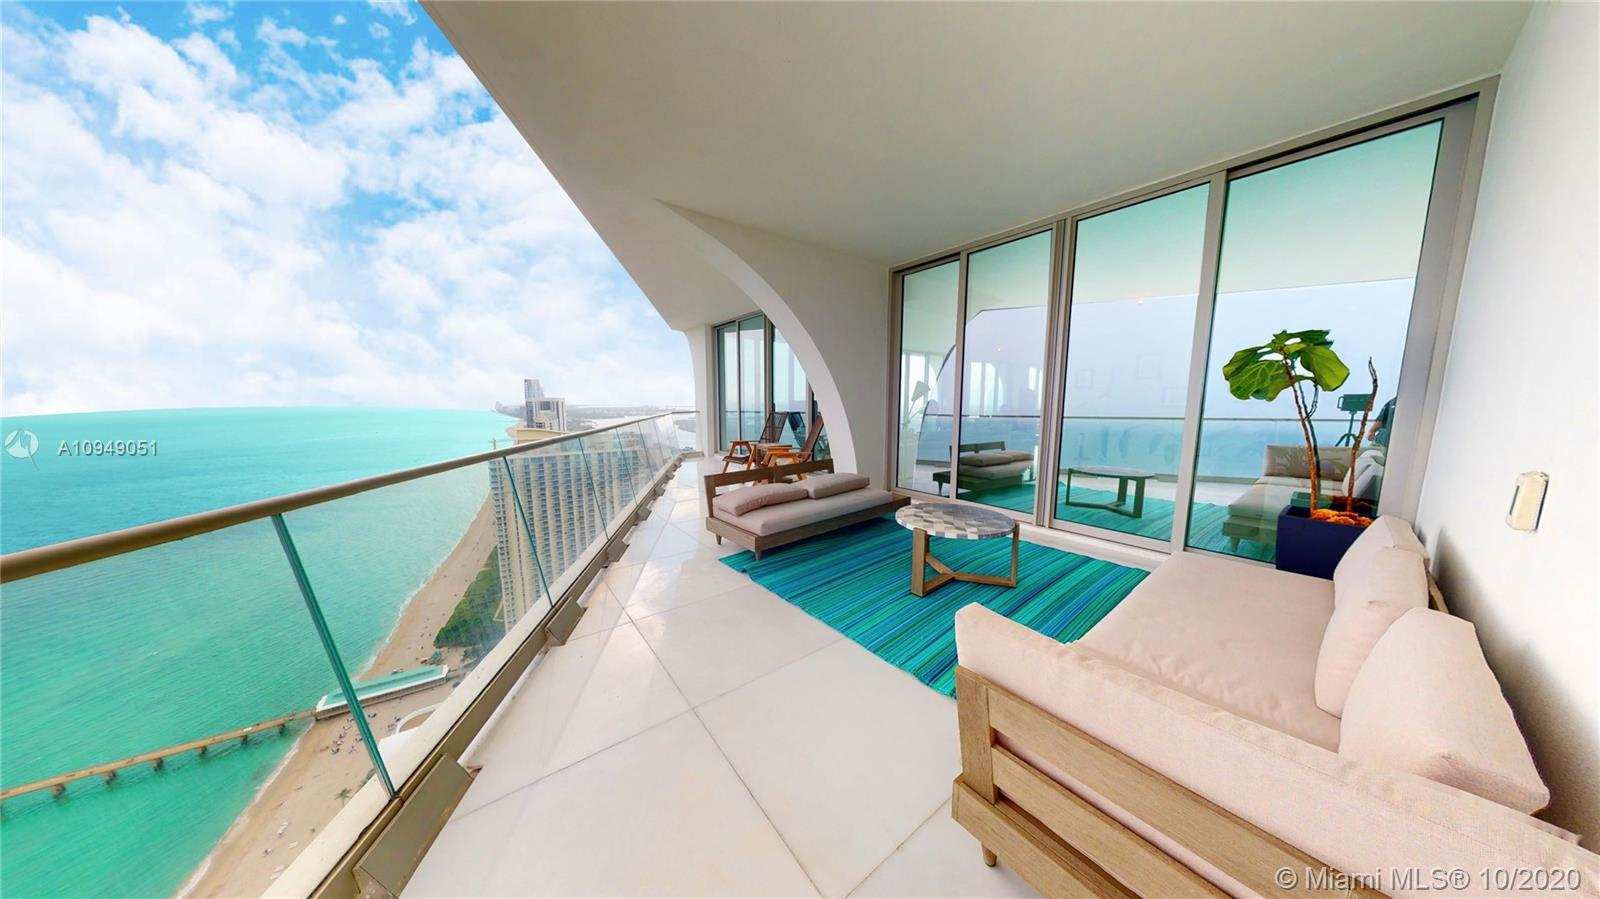 16901 Collins Ave, Unit #4601 Luxury Real Estate